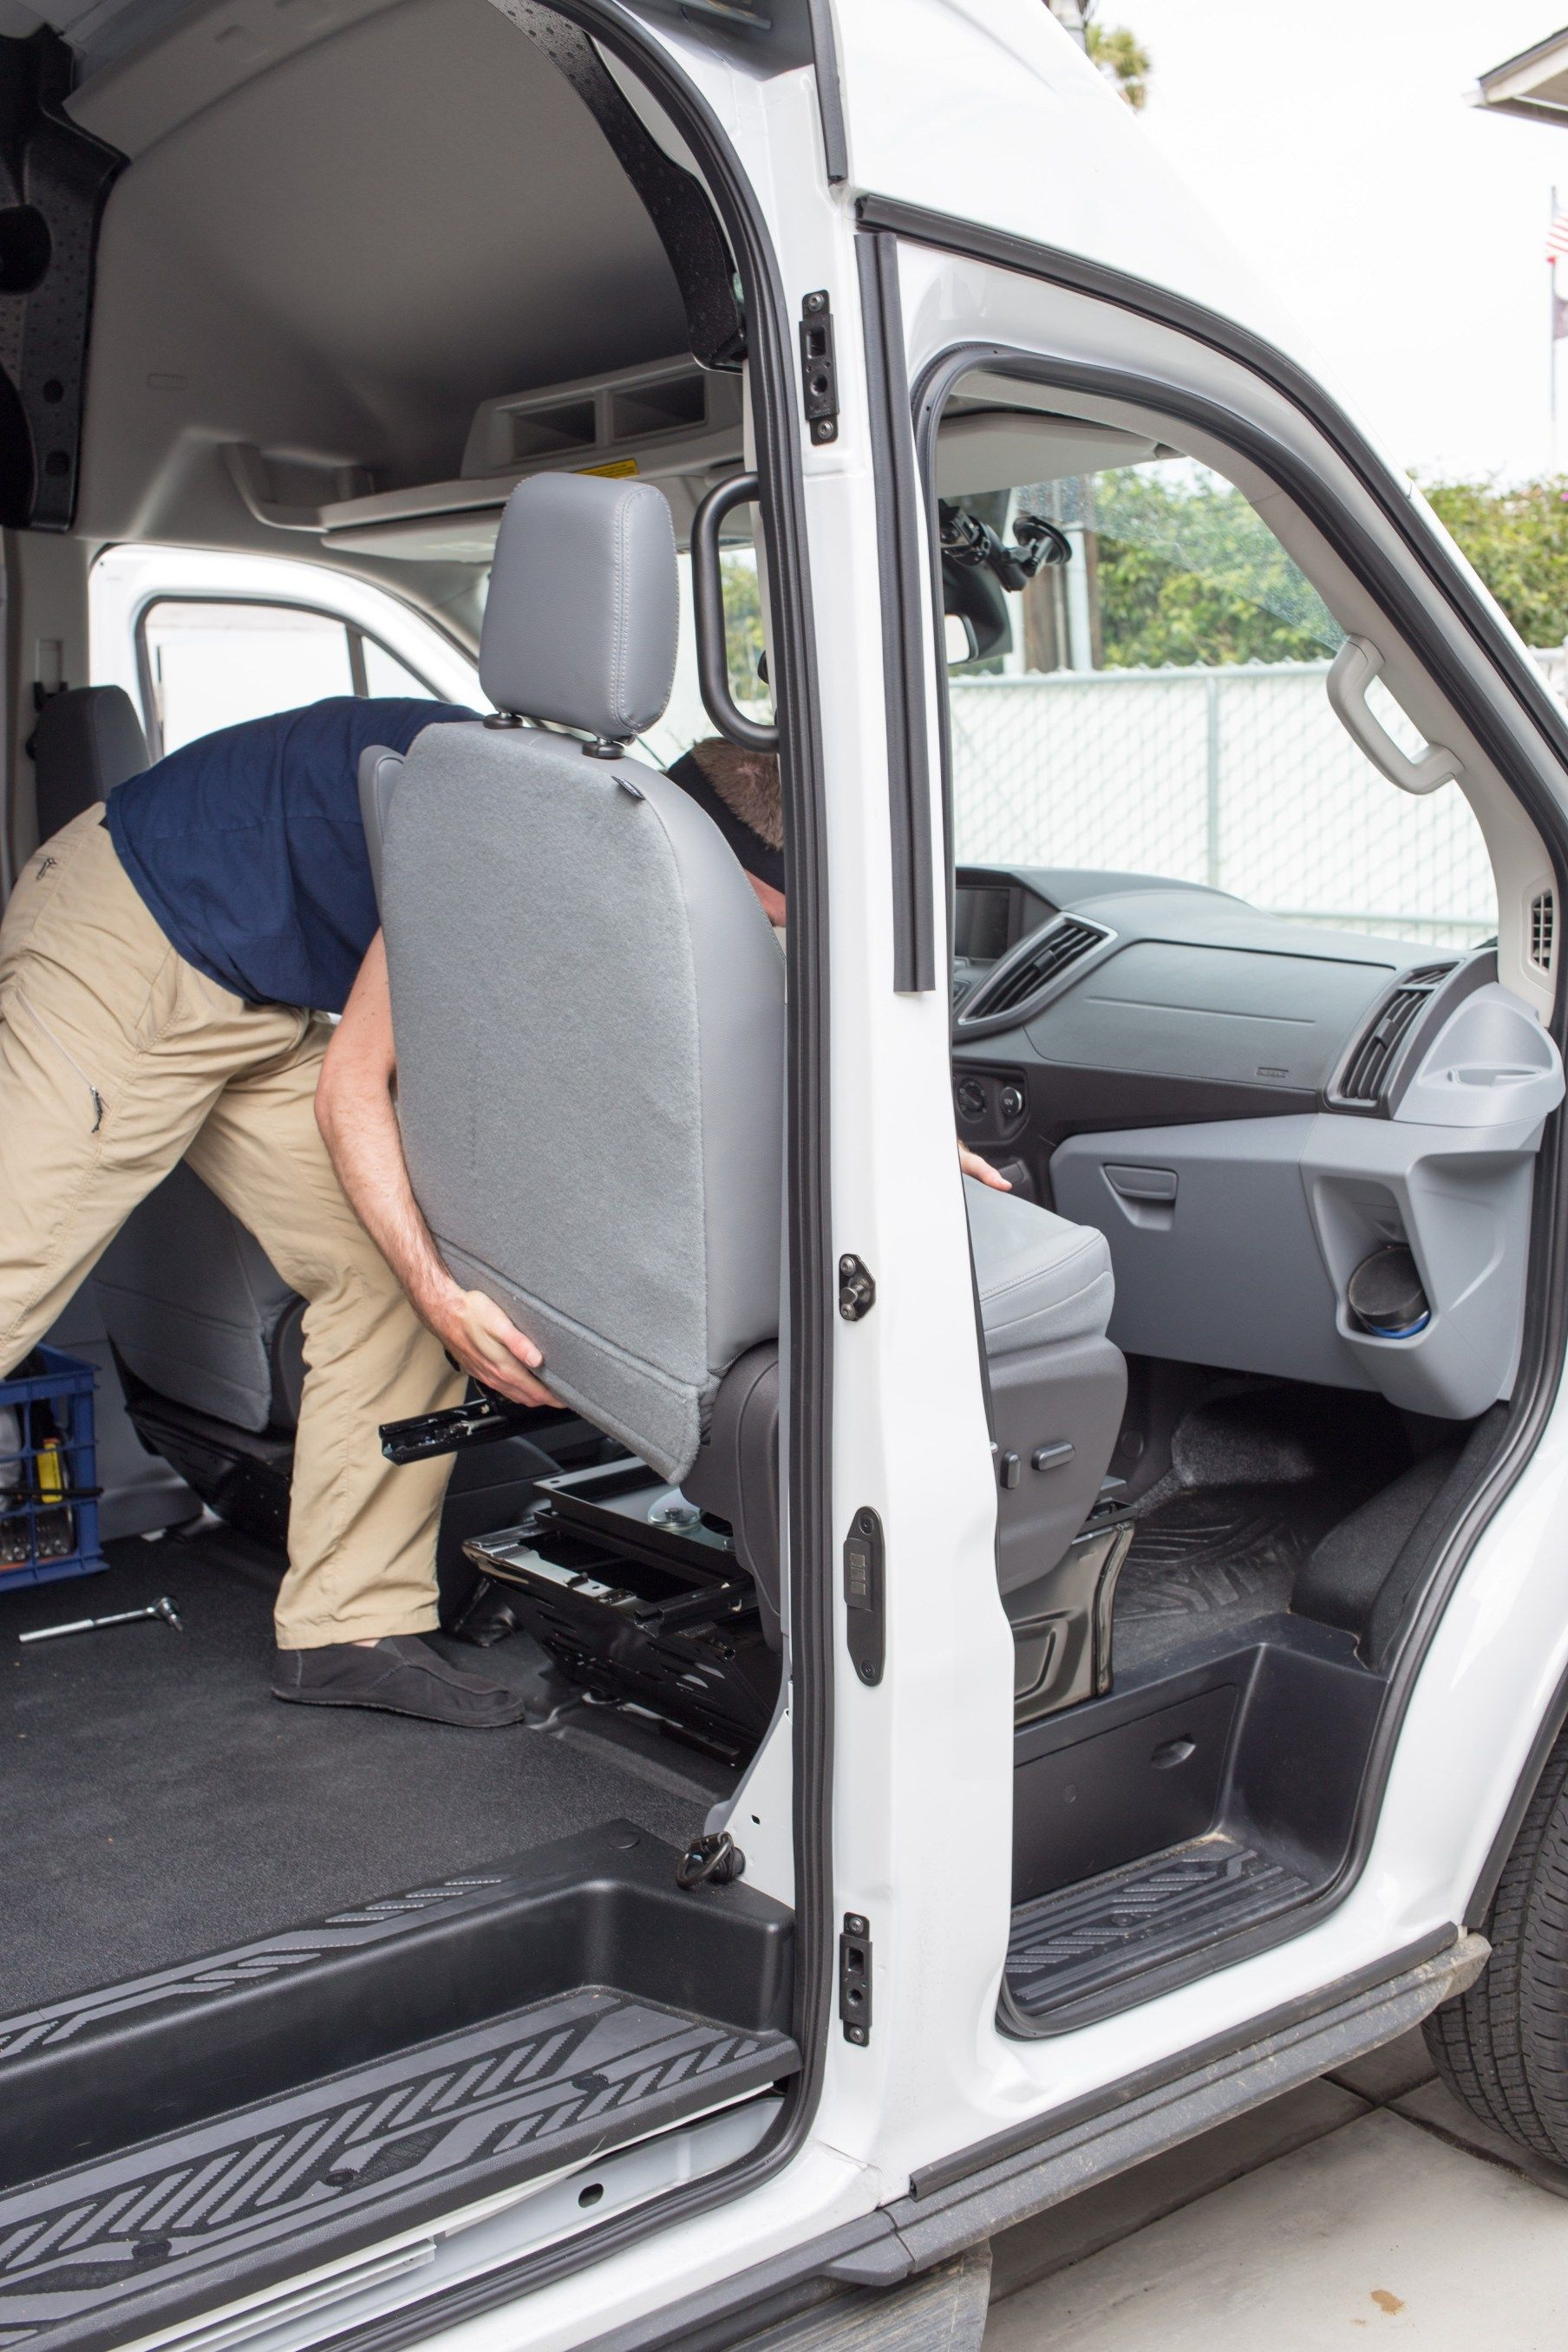 How To Install A Swivel Seat Adapter Swivel Seating Seating Camper Van Conversion Diy